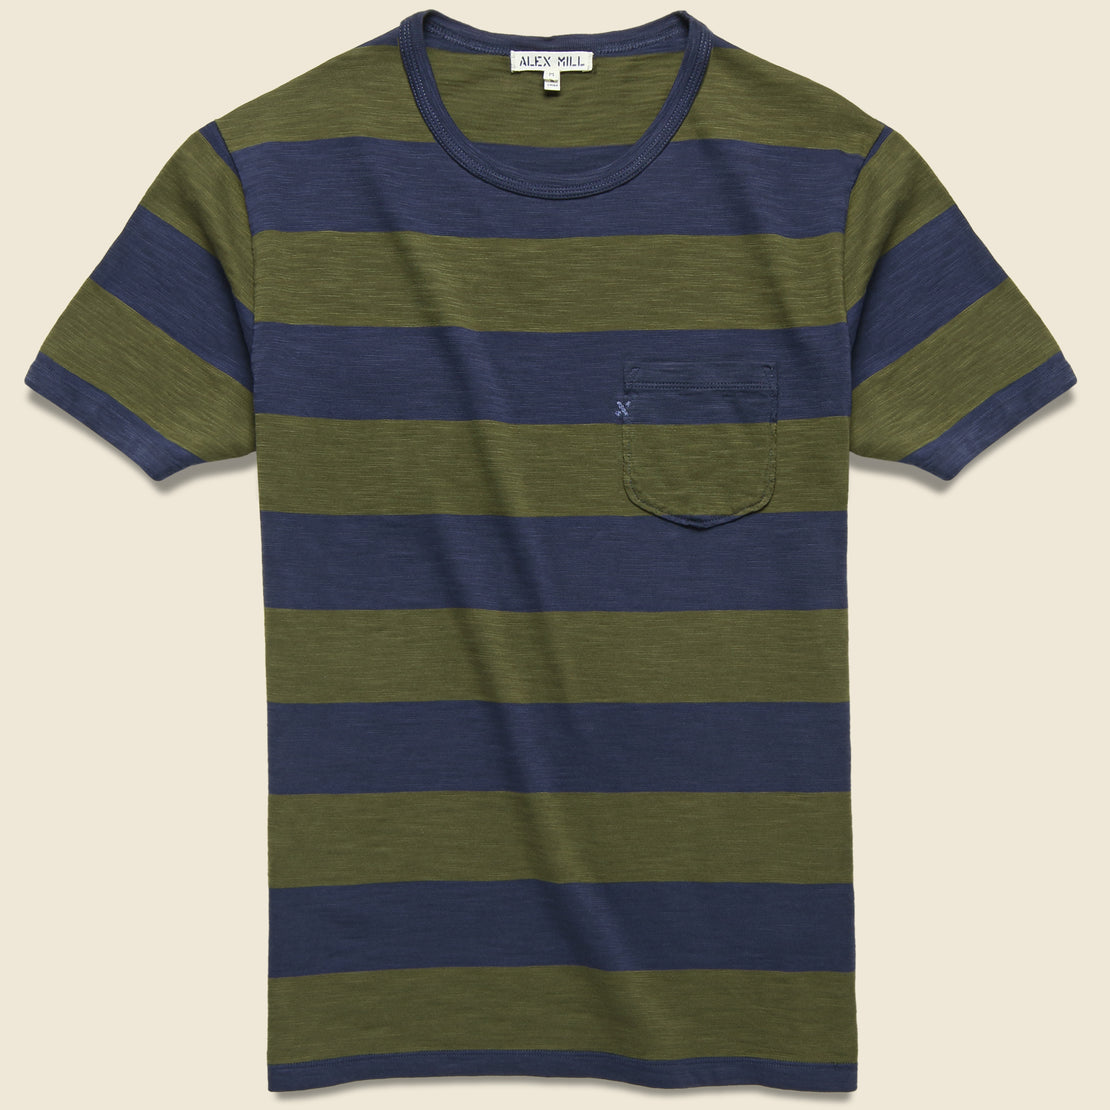 Alex Mill Wide Striped Pocket Tee - Navy/Military Green